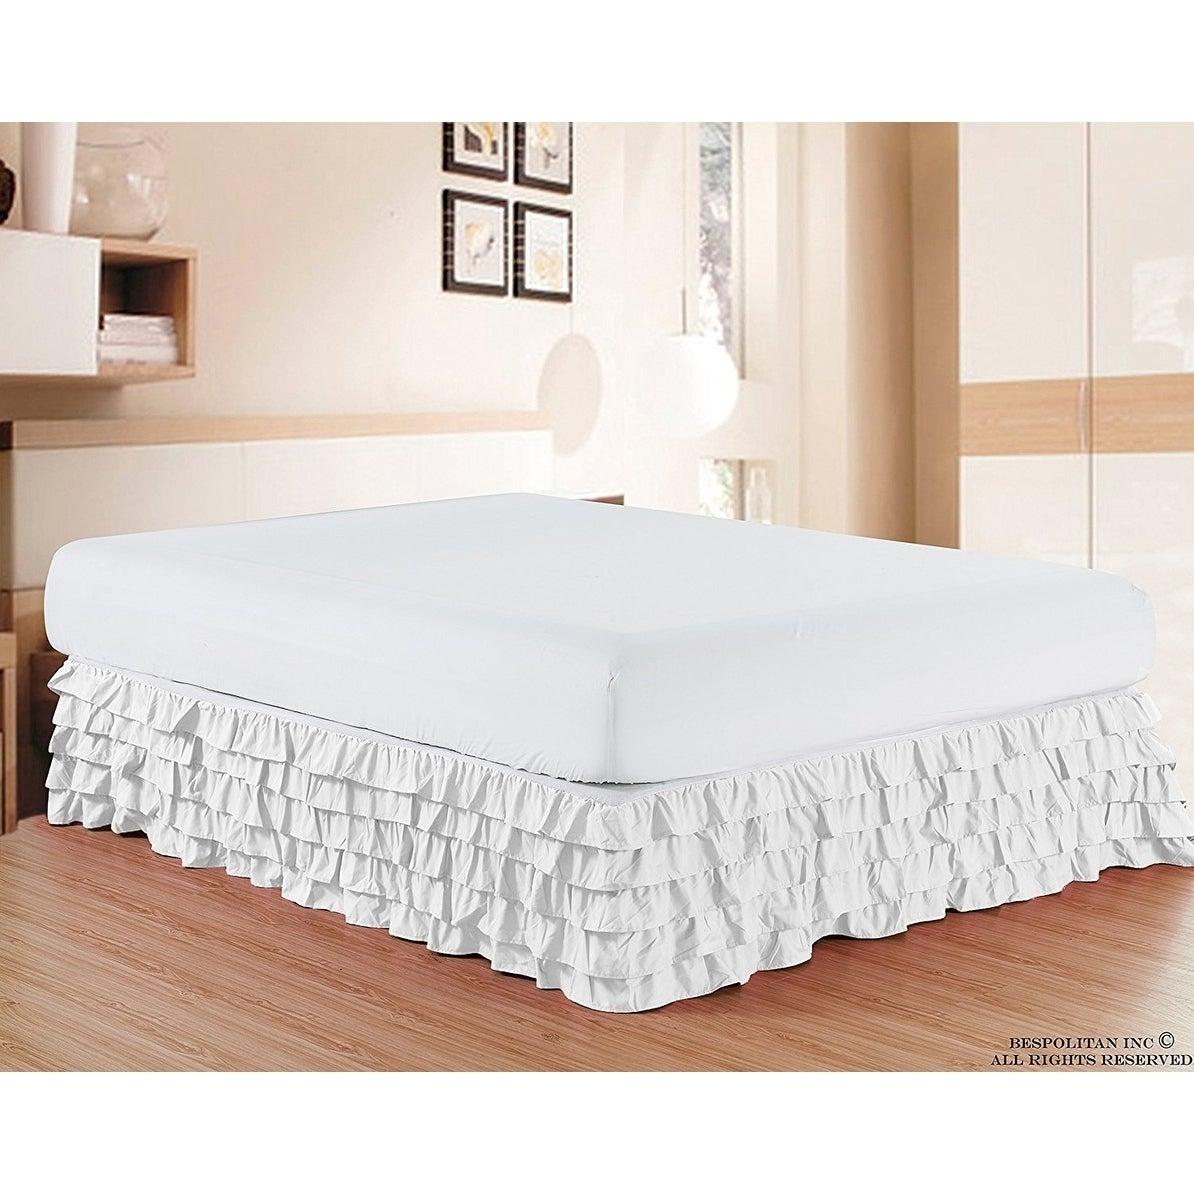 Elegant Comfort Luxurious Premium Quality Wrinkle And Fade Resistant Multi Ruffle Bed Skirt 15inch Drop Free Shipping On Orders Over 45